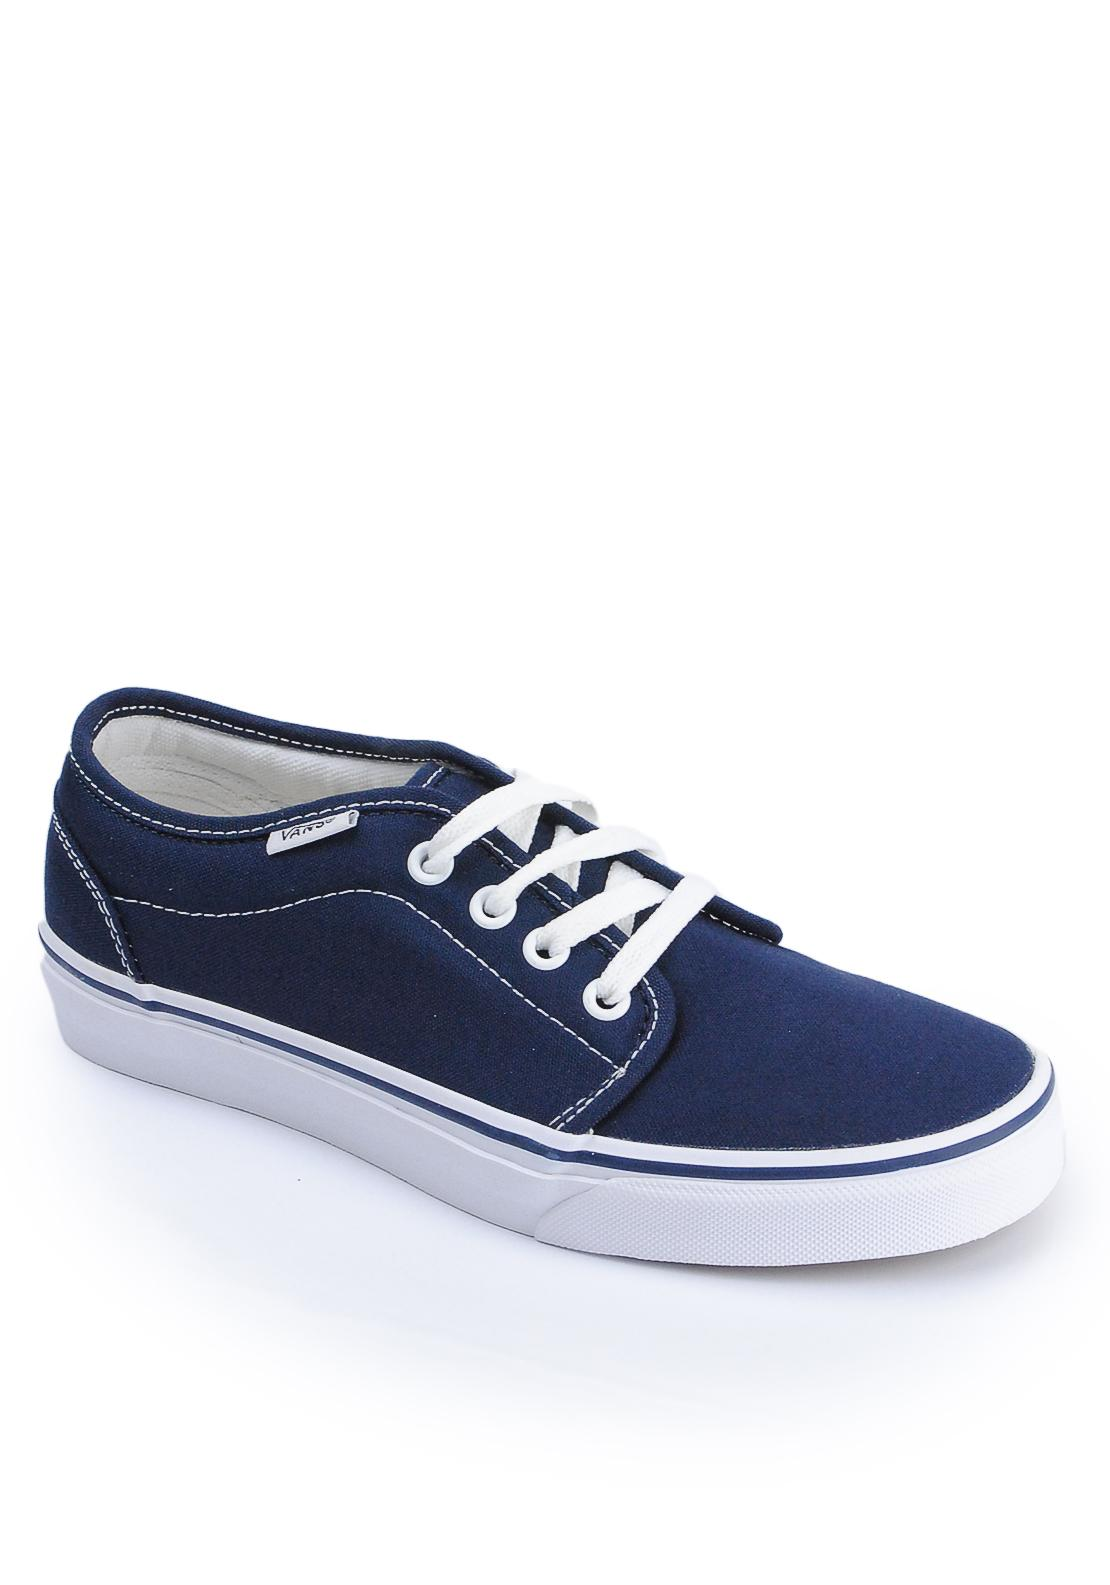 Vans Vulcanized Trainers, Navy